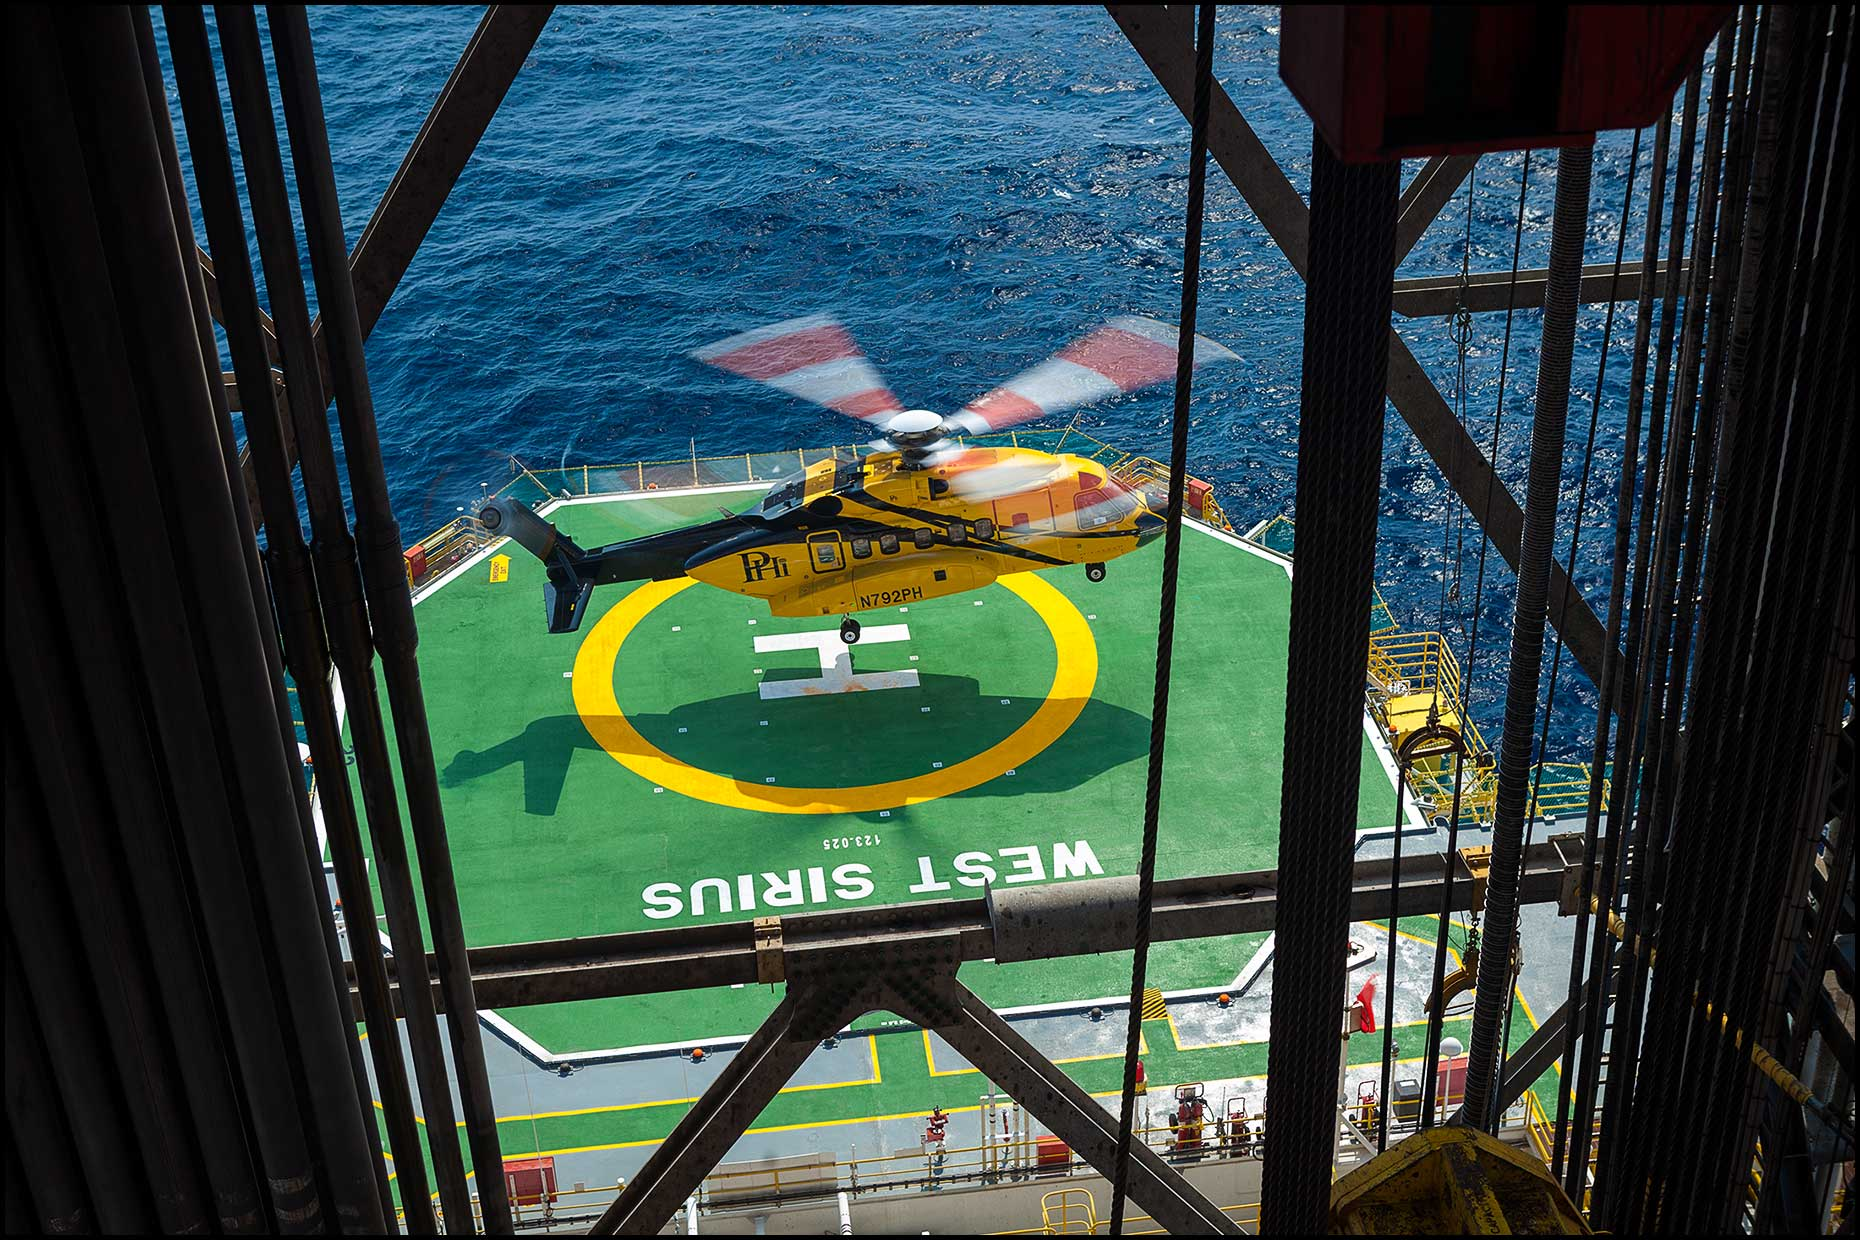 A crew helicopter lands on the helipad of an offshore drilling rig as seen through pipe stacks in the derrick.